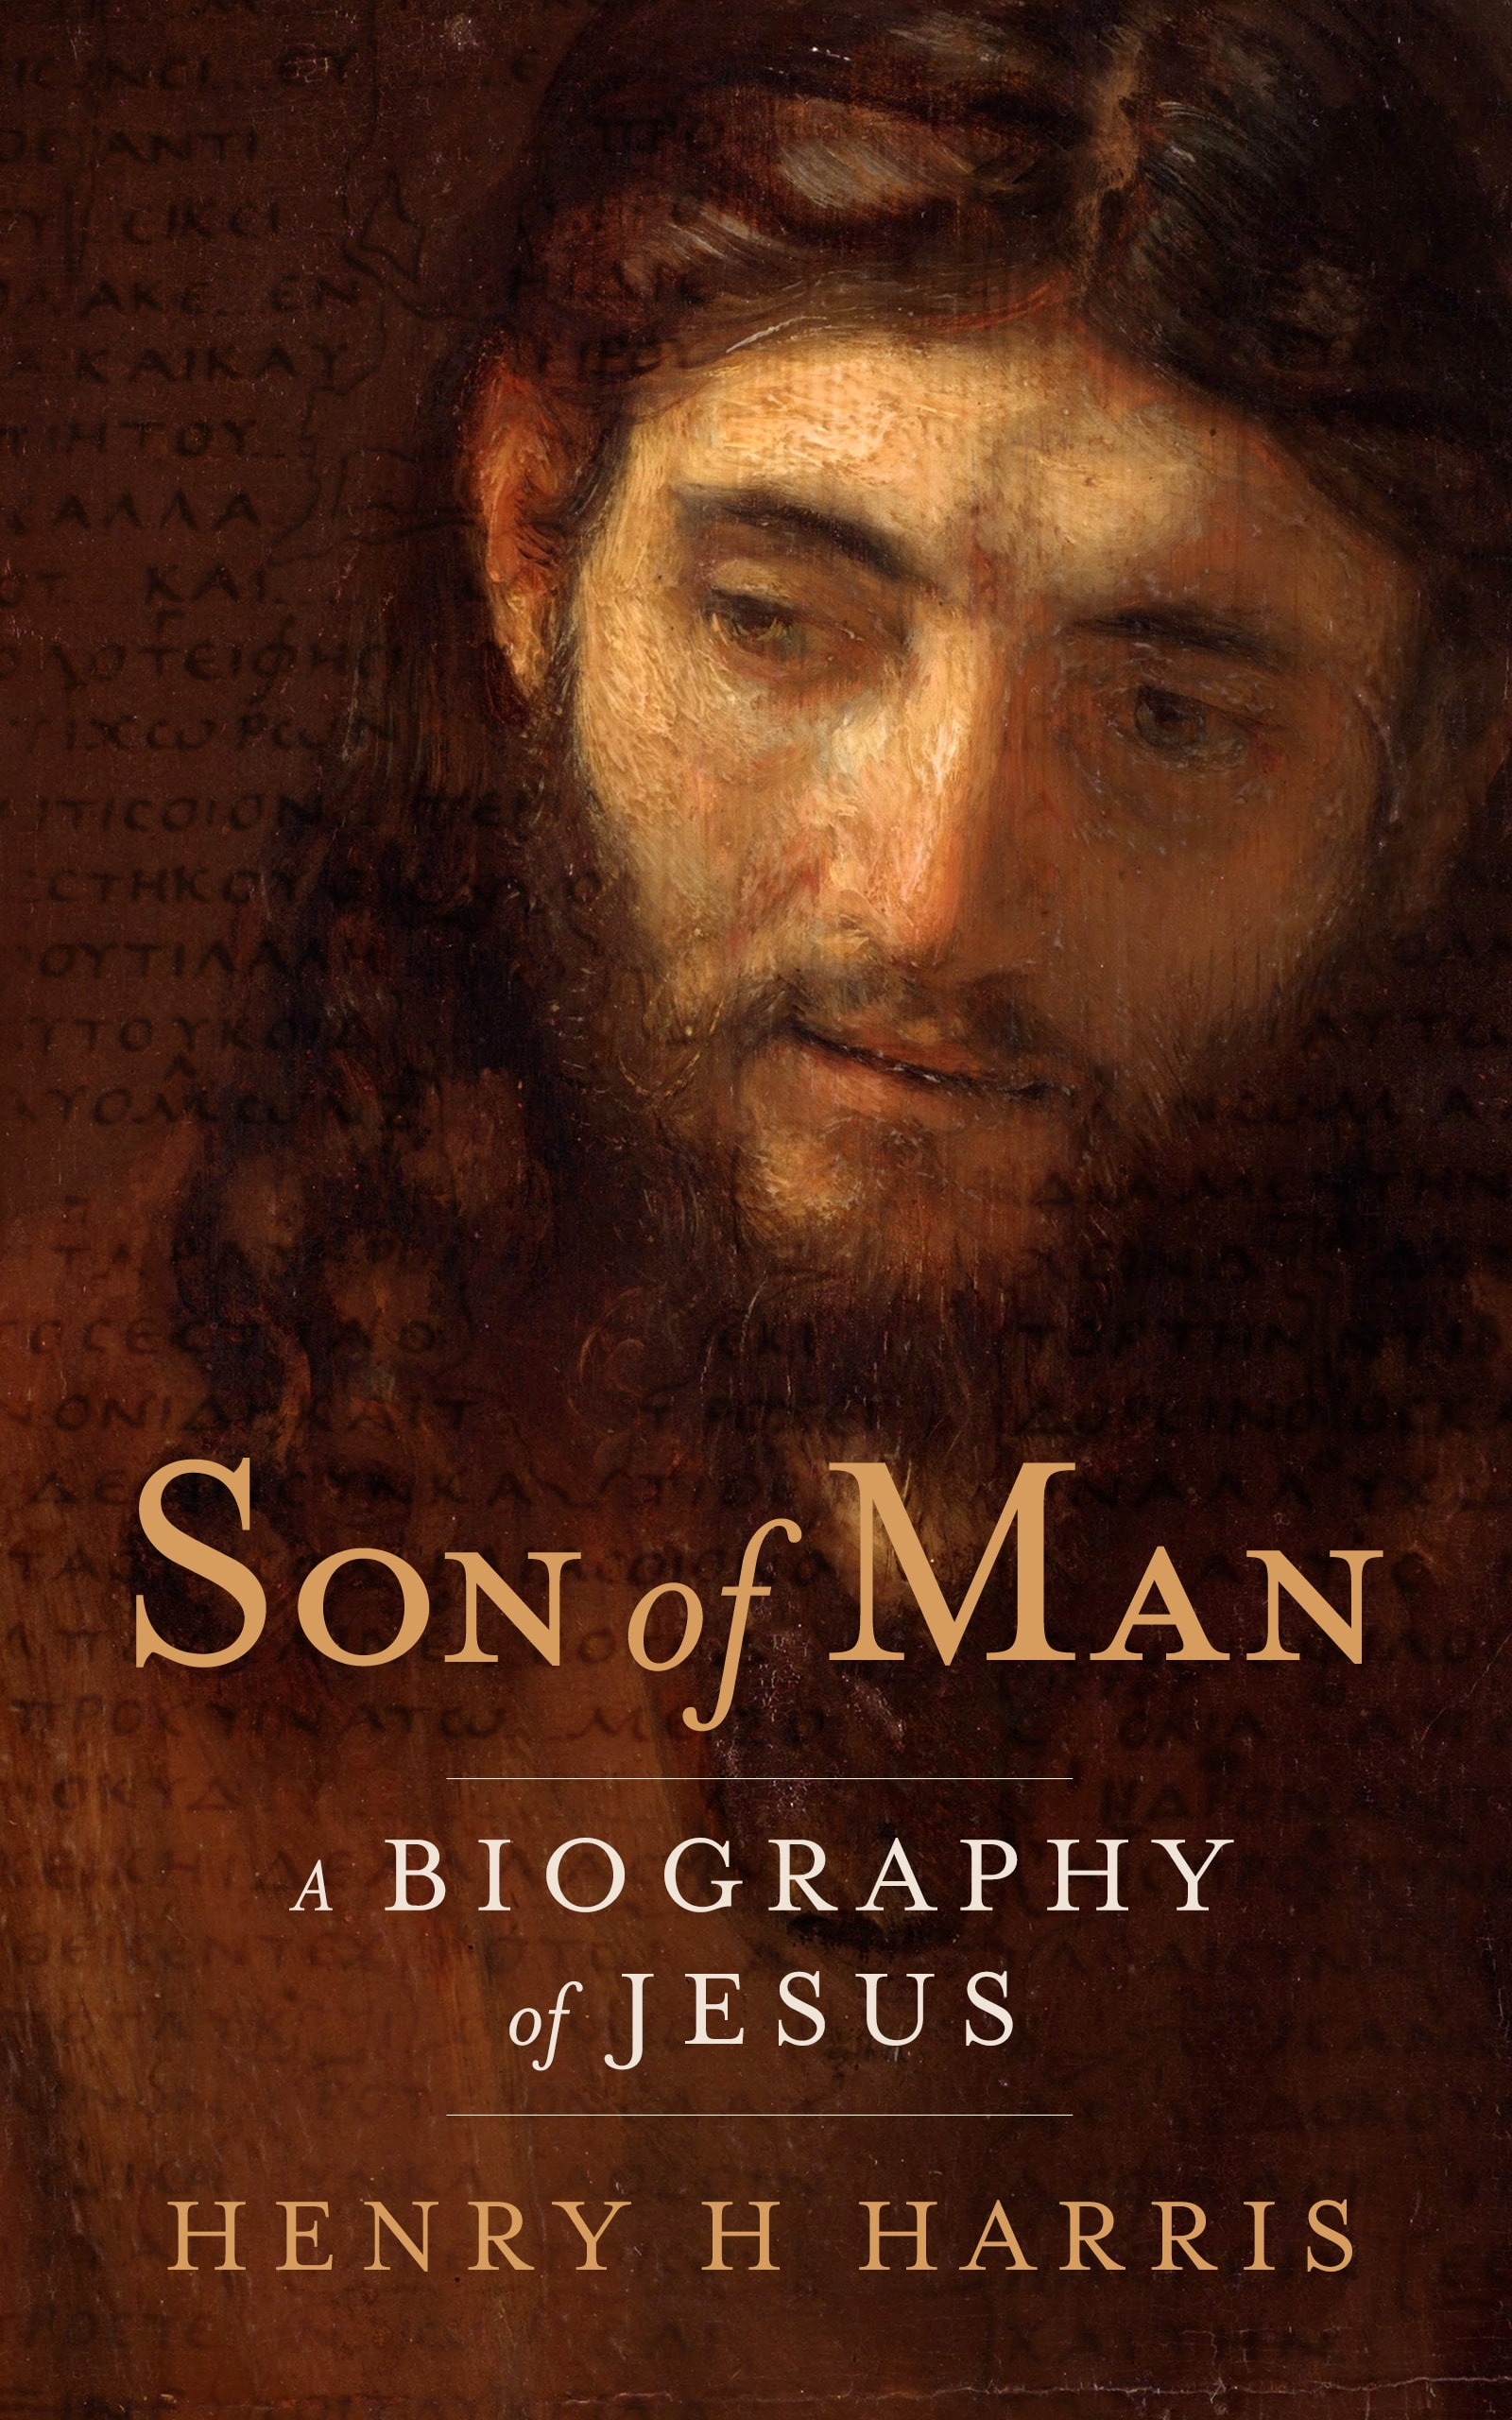 Son of Man: Son of Man: A Biography of Jesus is a book by Christian author Henry H Harris